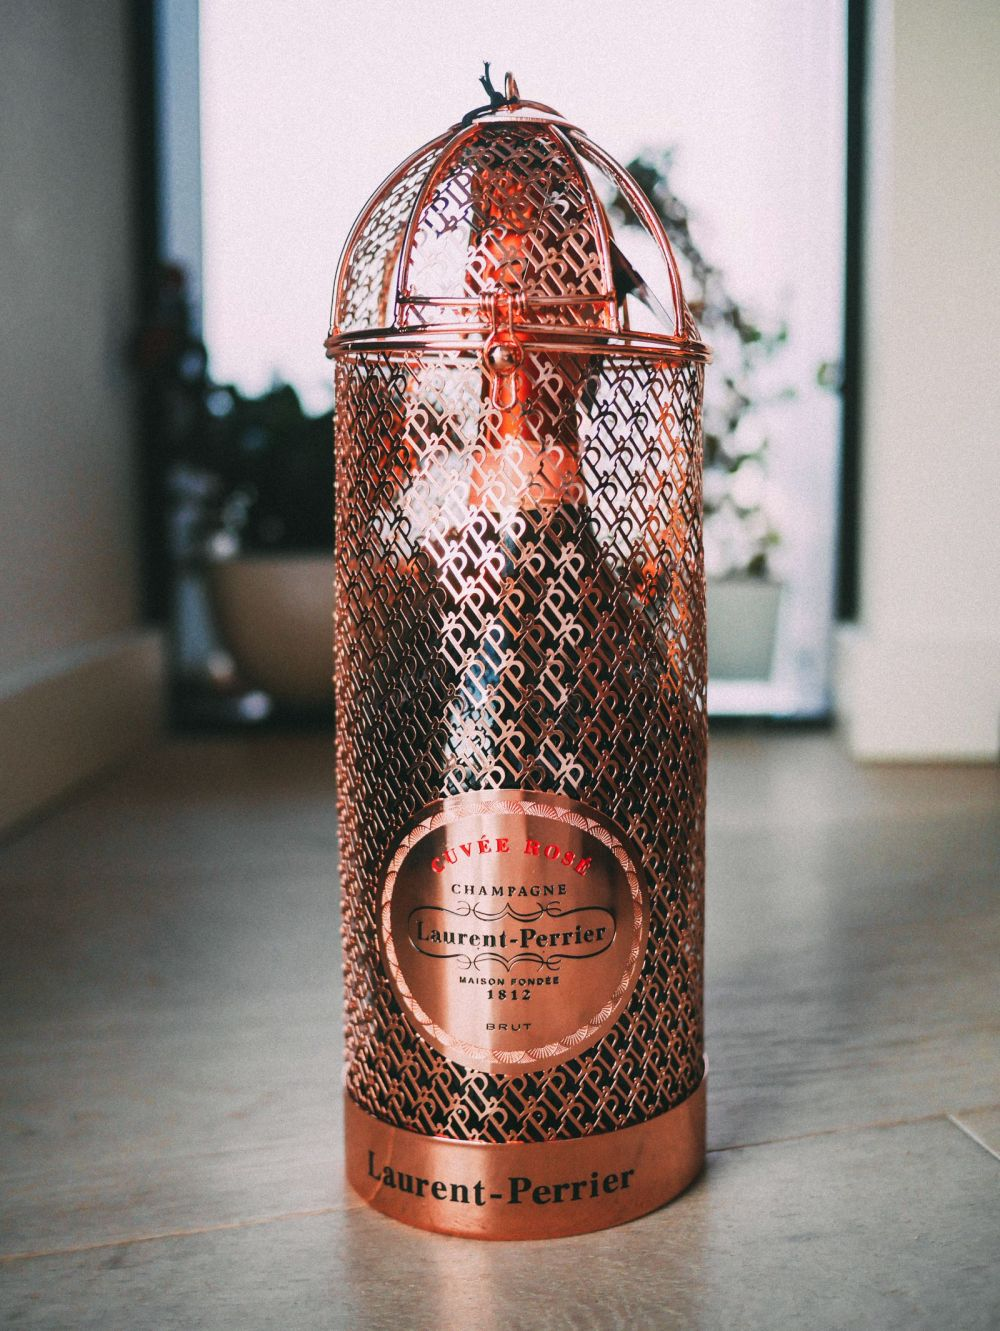 Free Champagne - Laurent Perrier Grand Cuvee (9)